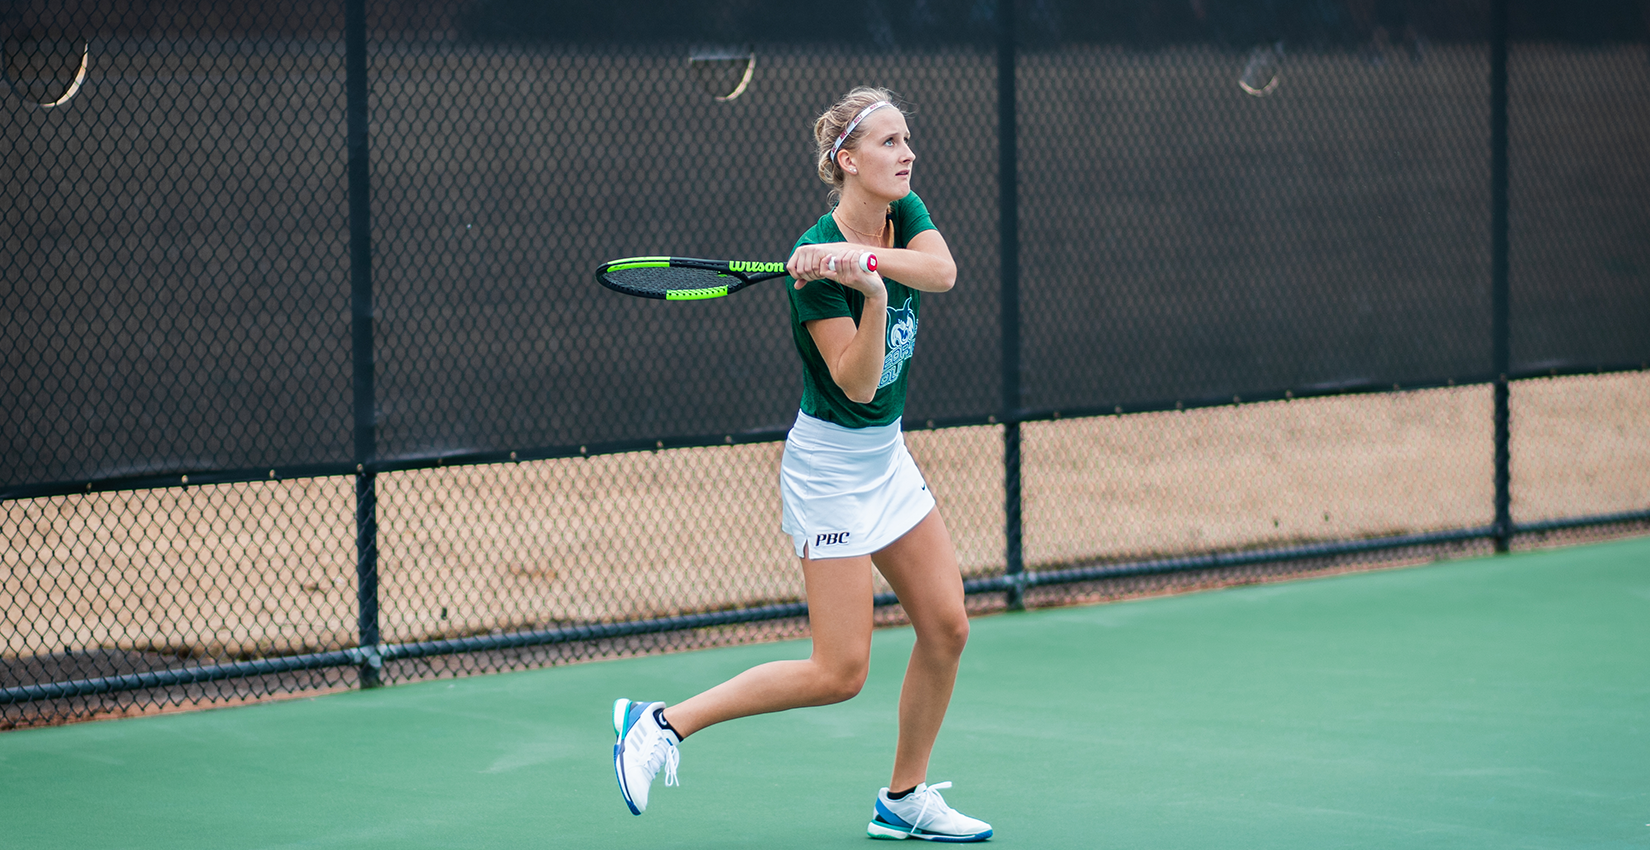 #25 Bobcat Women's Tennis Sweeps Singles, Defeats Brenau at Home, 6-1